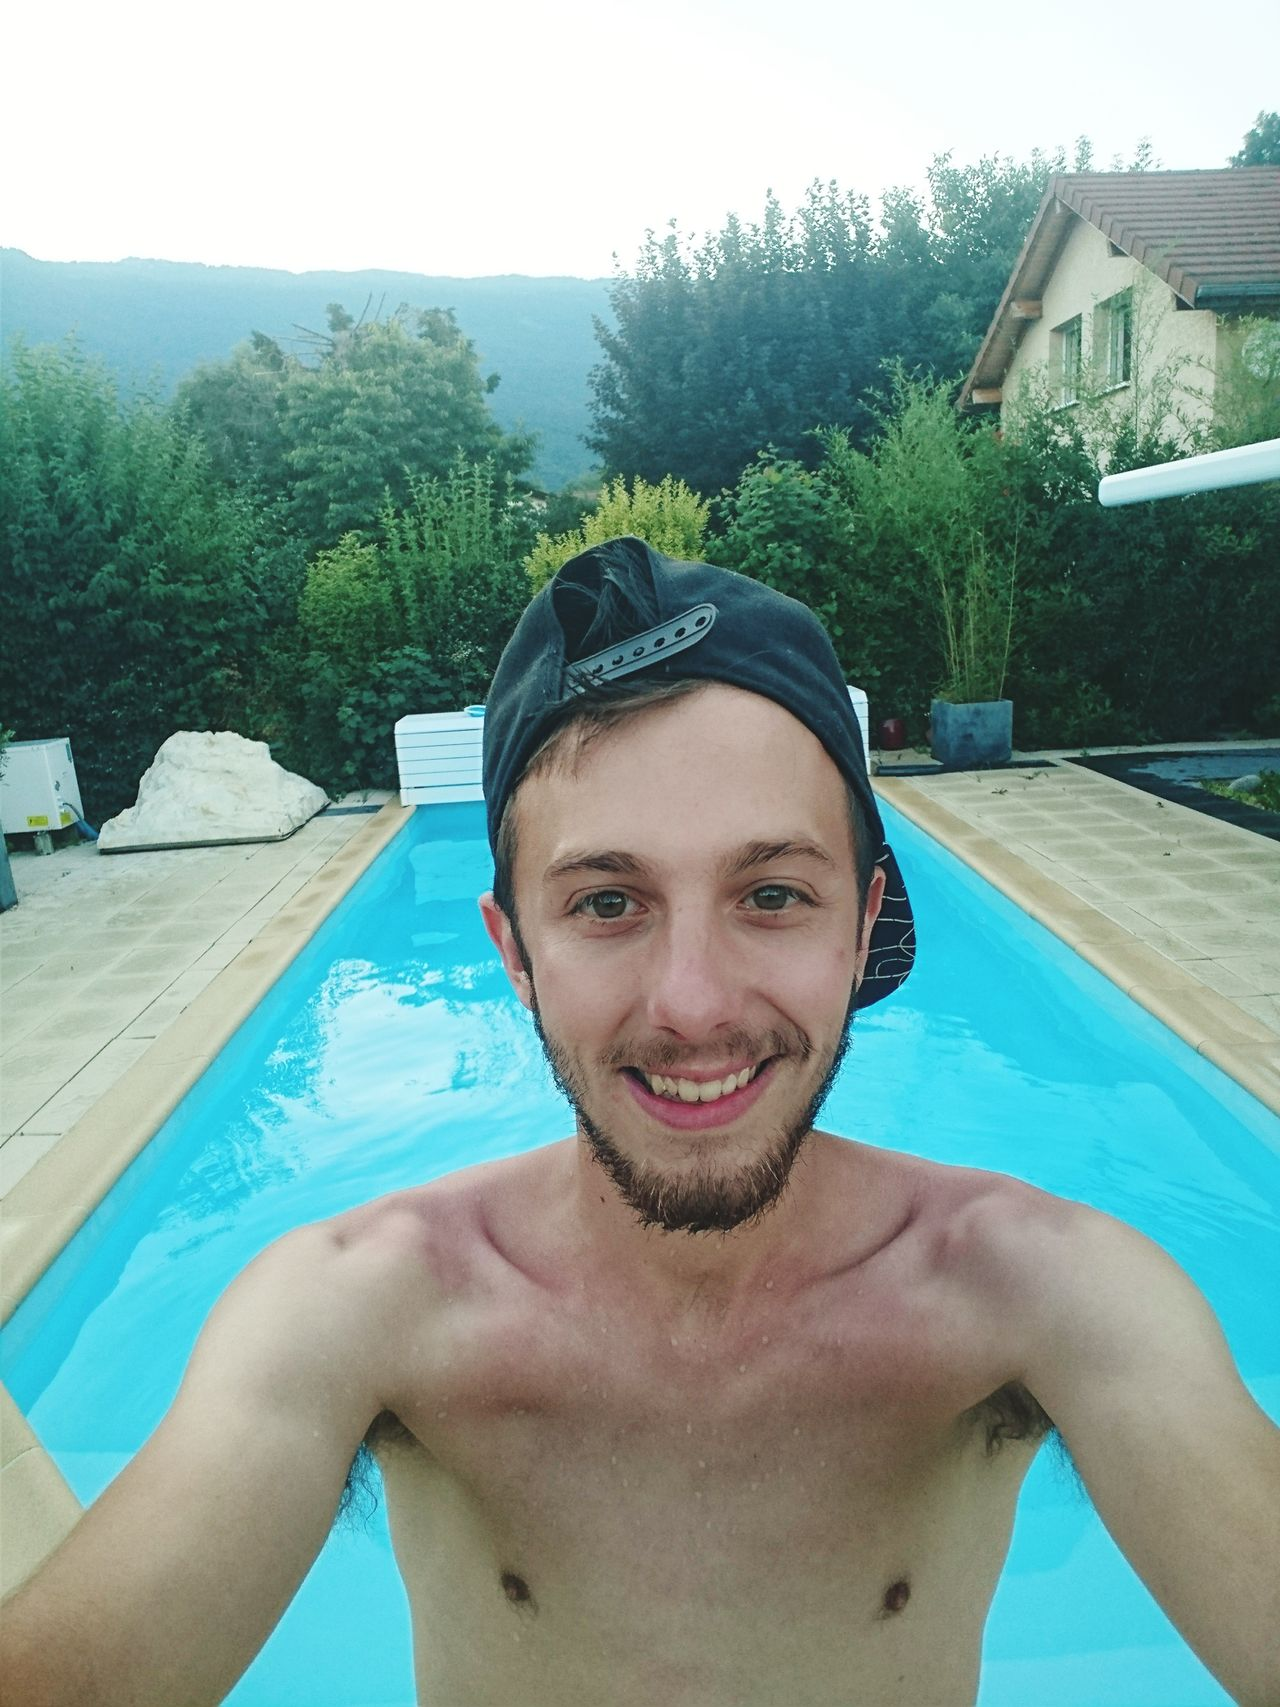 Water Swimming Pool One Person Only Men One Man Only Headshot Summer Portrait Front View Day Vacations Mid Adult Outdoors Looking At Camera Leisure Activity Snapback Selfıe Followme Itsme